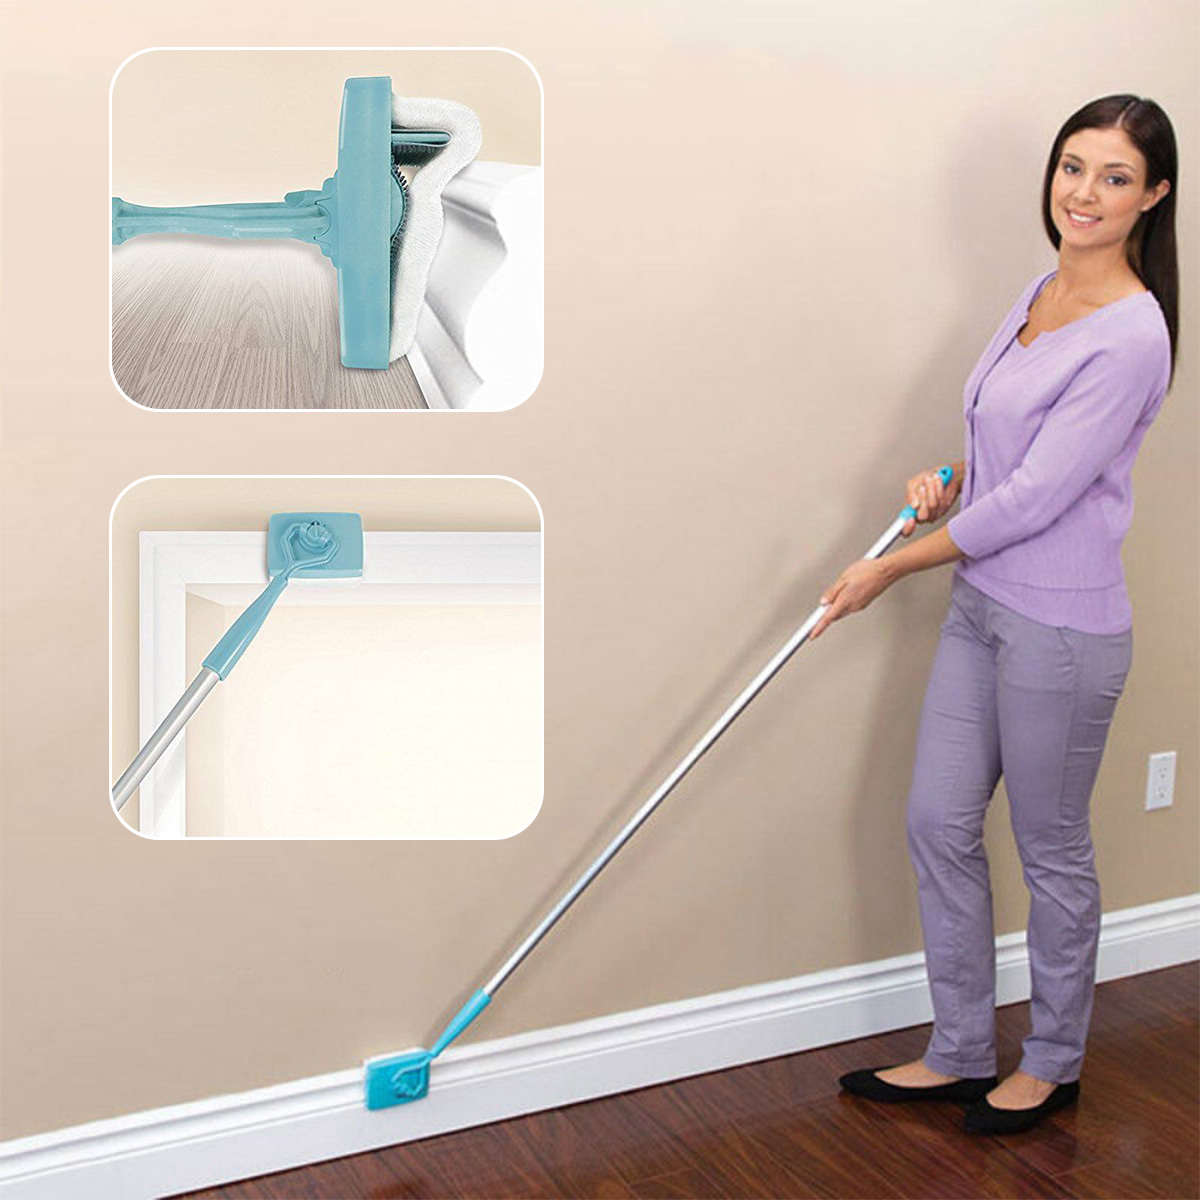 Jx Lclyl New Microfiber Baseboard Buddy Extendable Duster